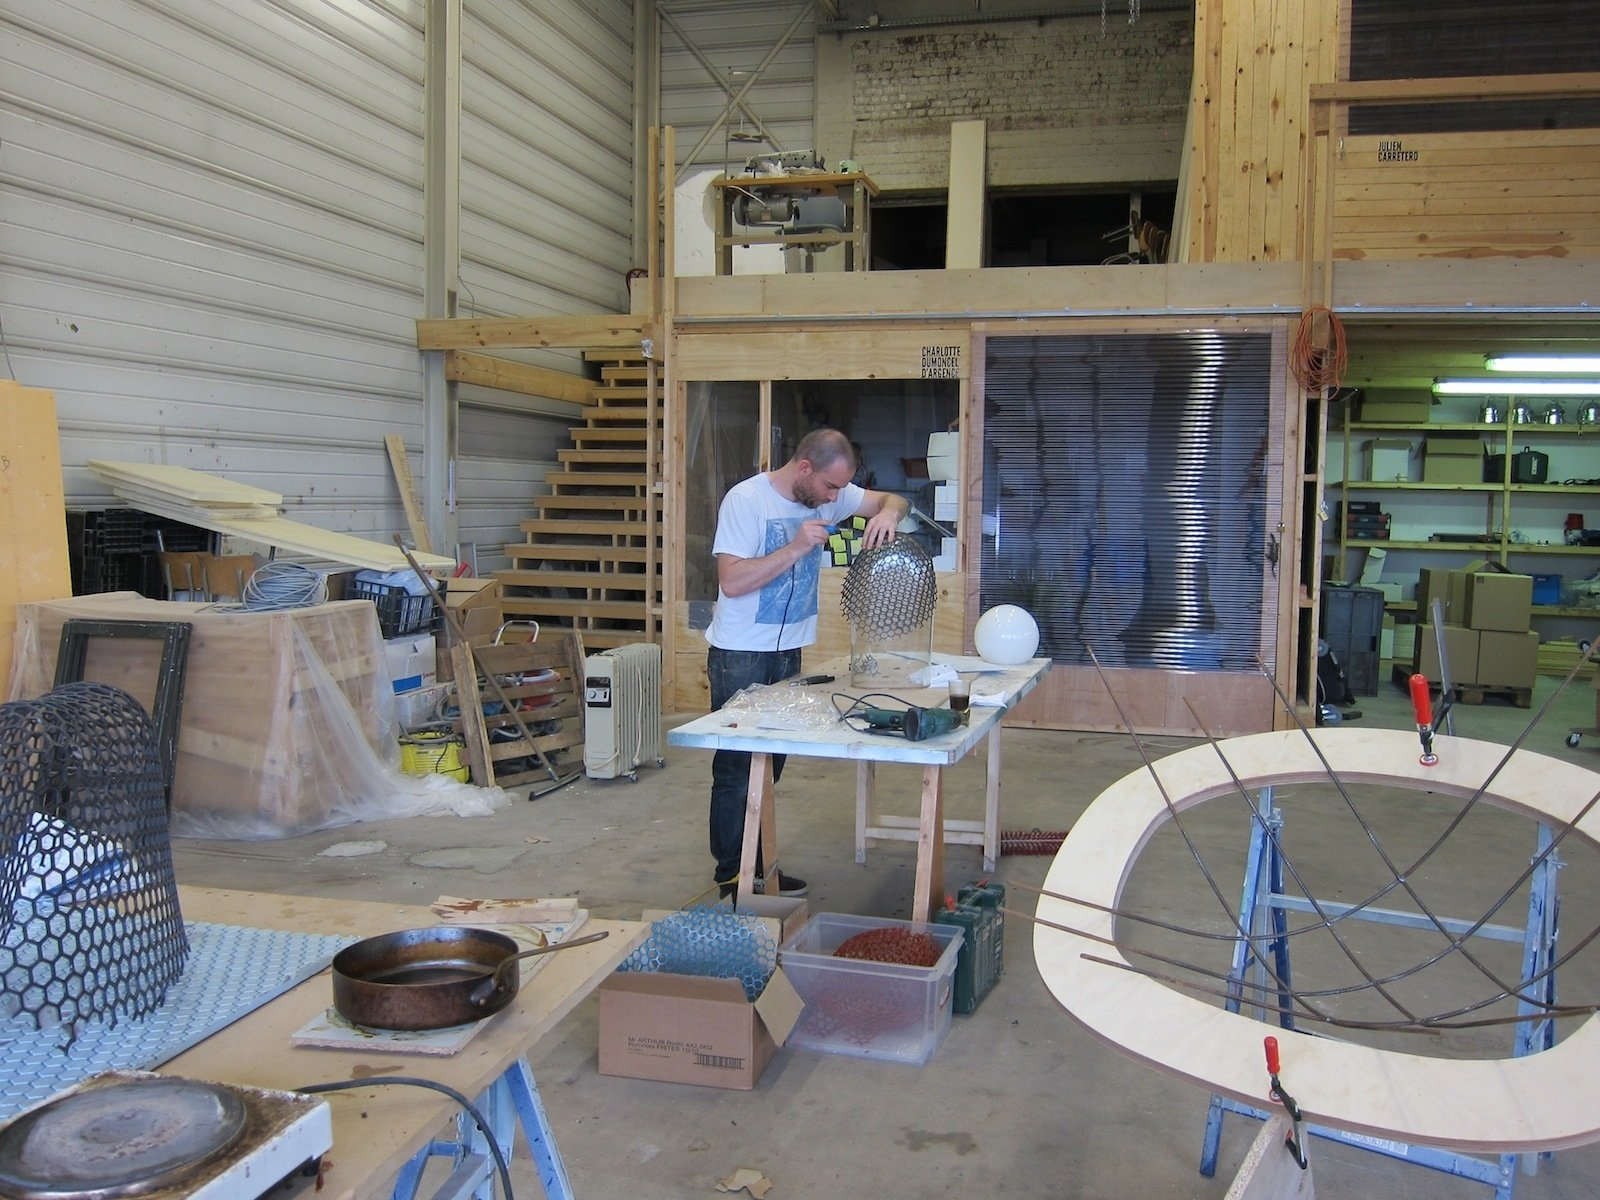 The Making-of Balloon Bowls